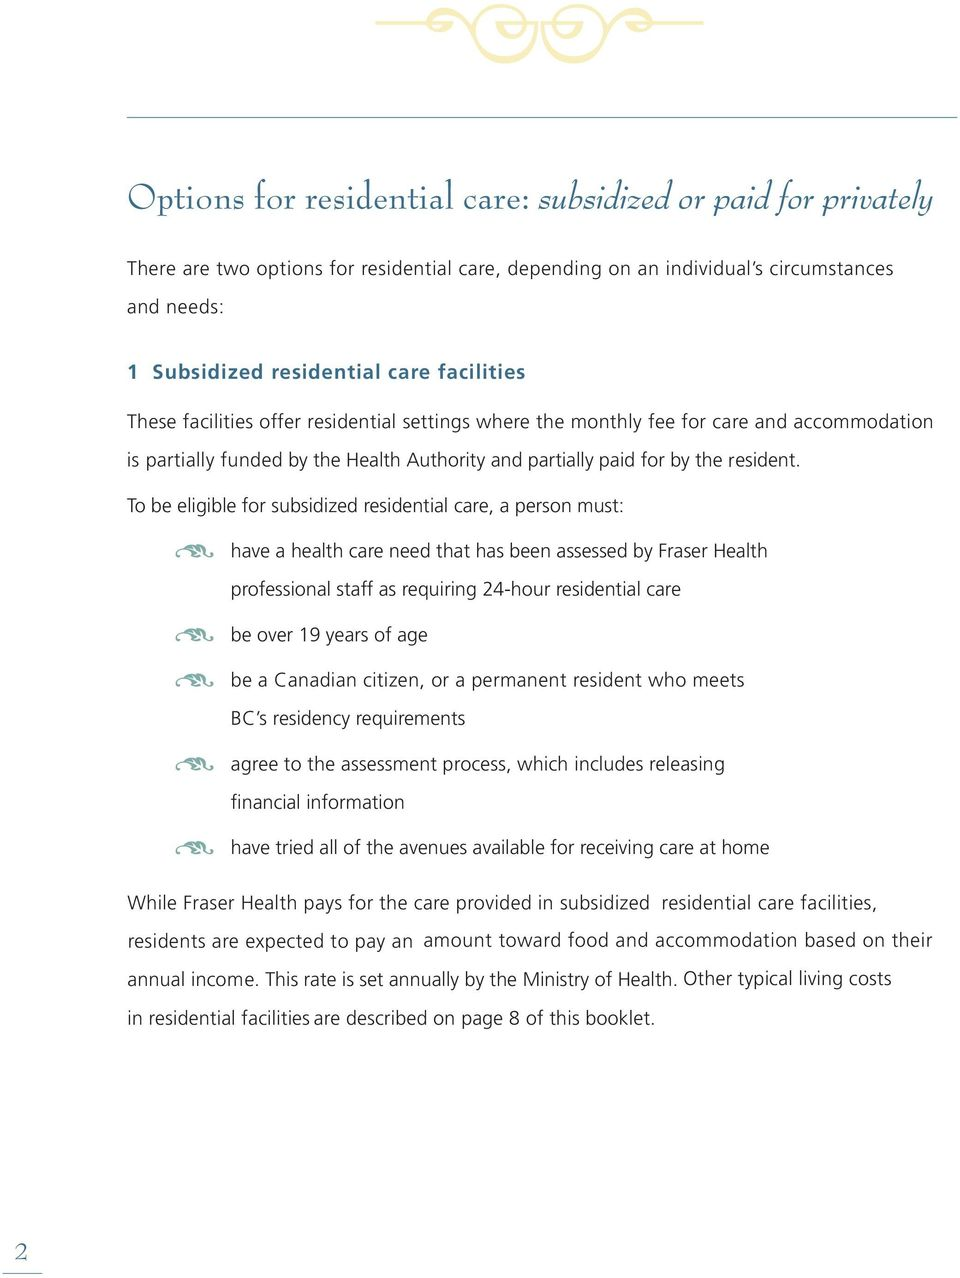 To be eligible for subsidized residential care, a person must: have a health care need that has been assessed by Fraser Health professional staff as requiring 24-hour residential care be over 19